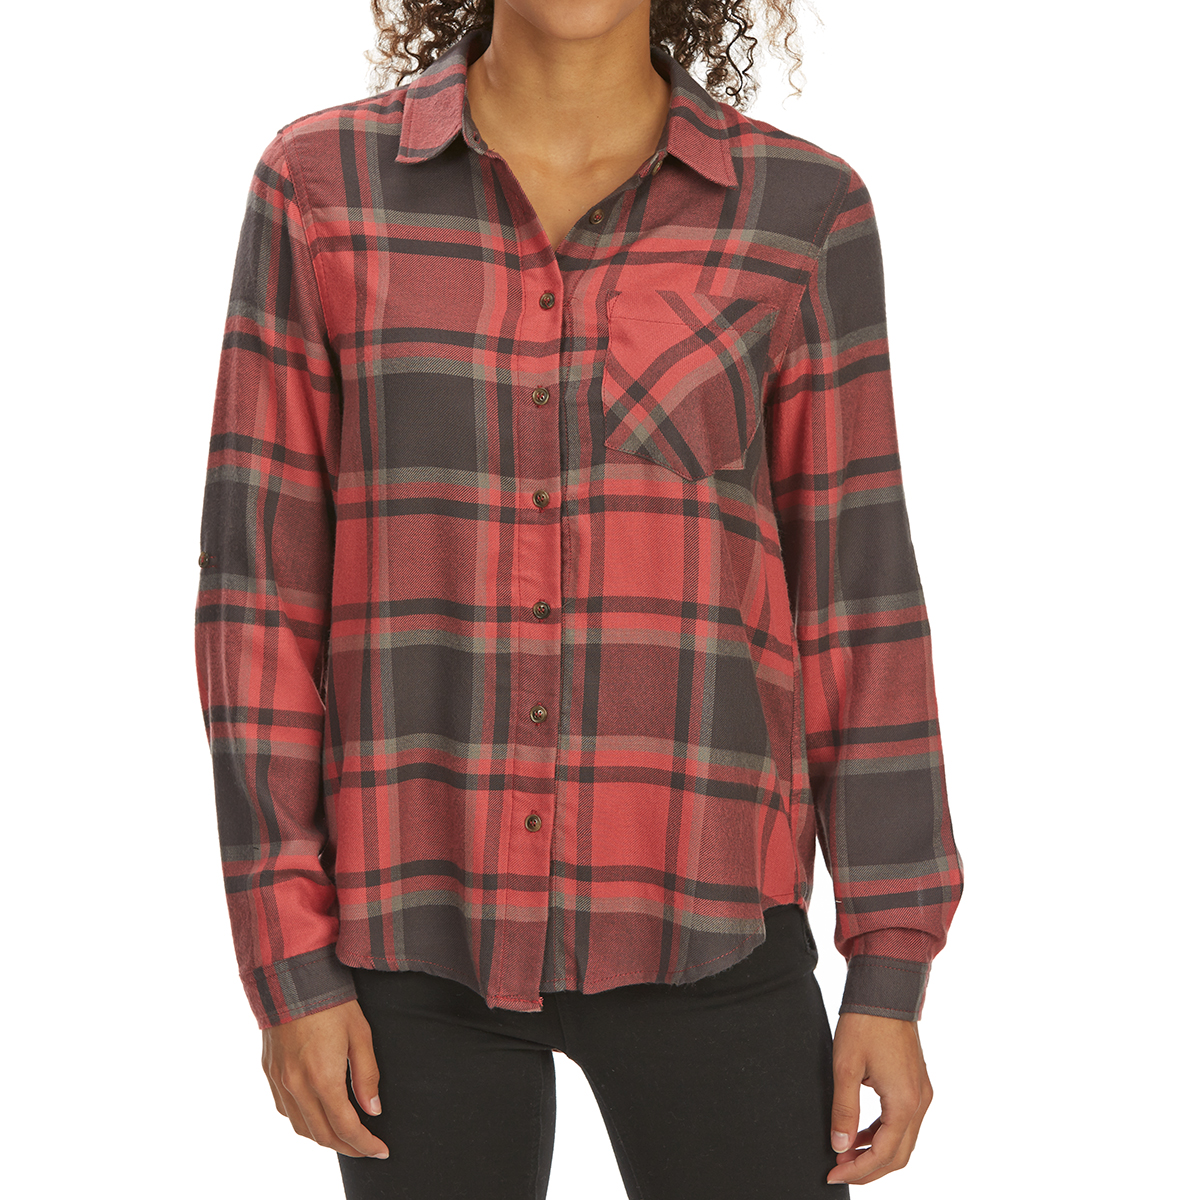 Pink Rose Juniors' Brushed Windowpane Plaid Long-Sleeve Flannel Shirt - Red, S